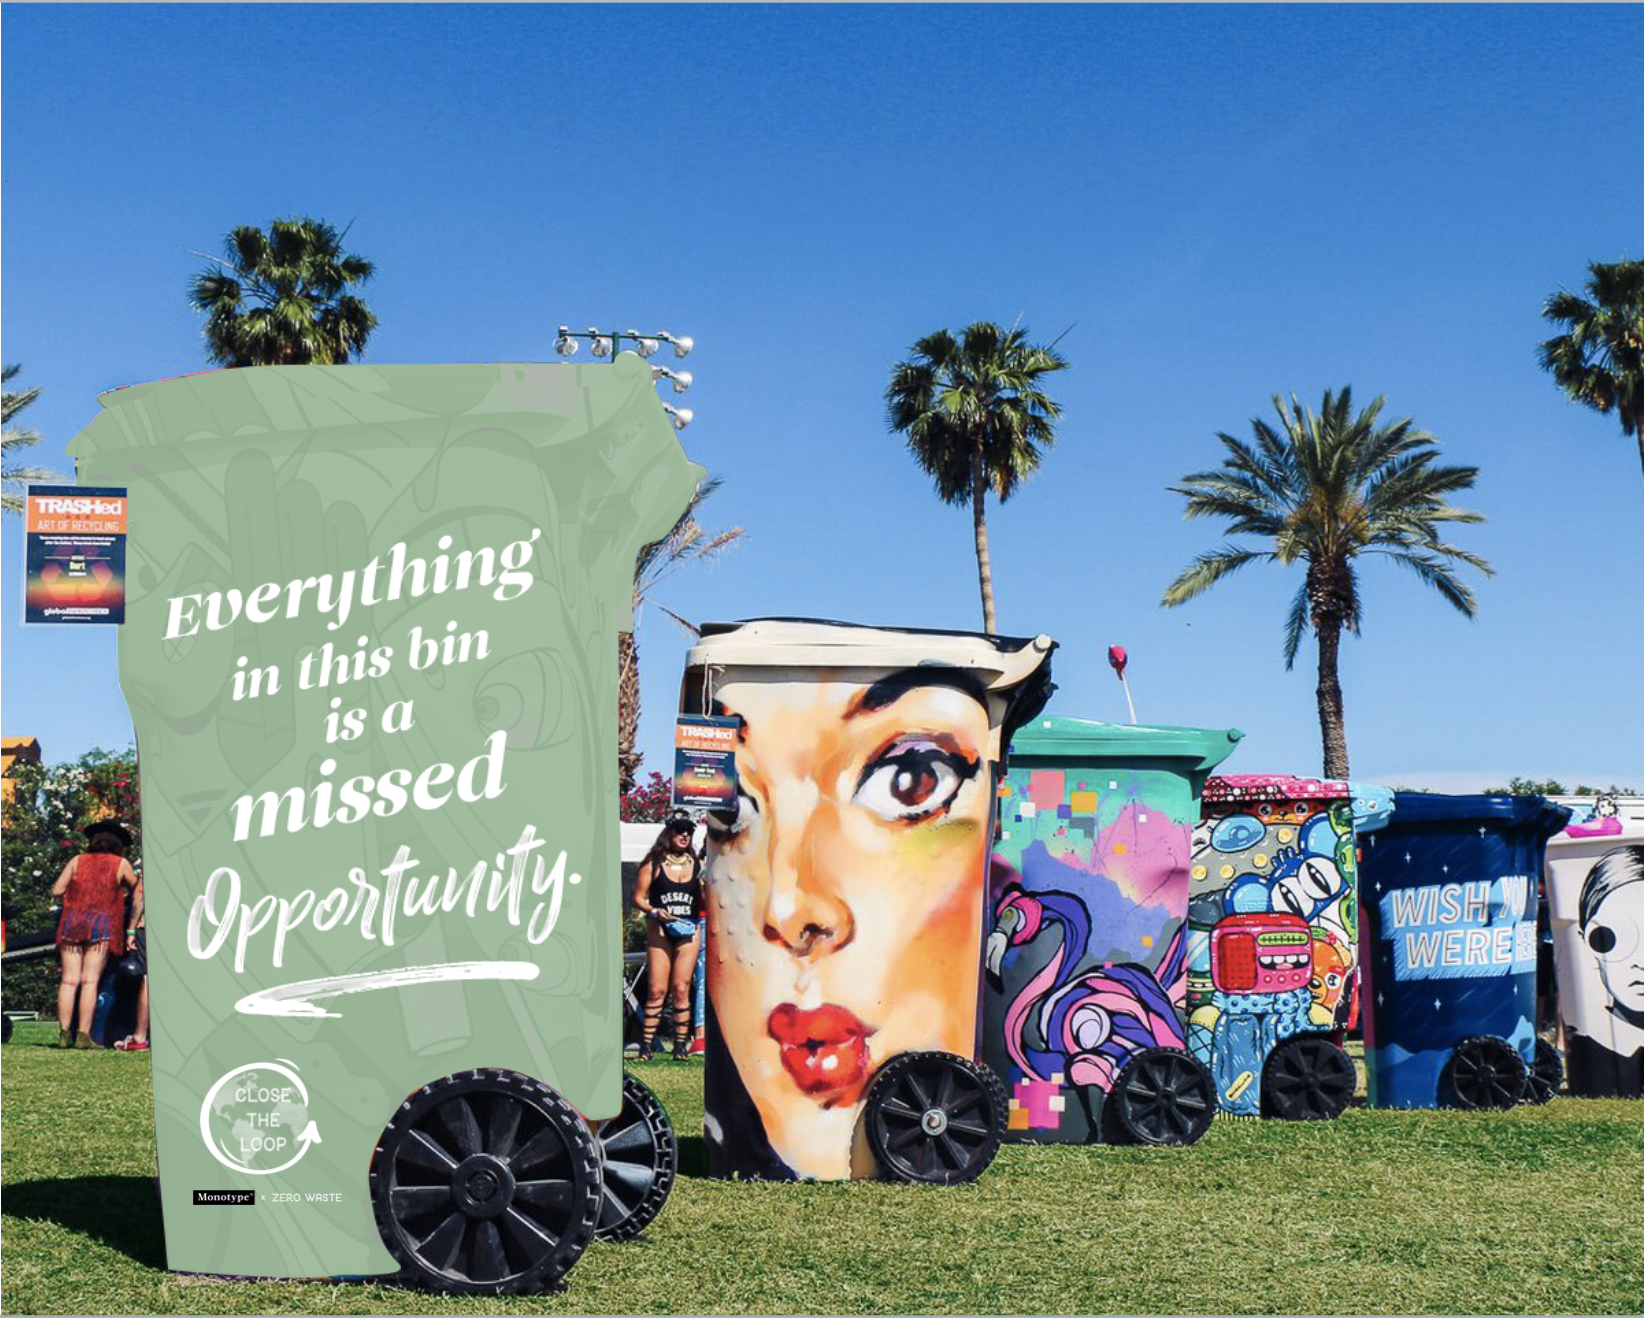 Coachella currently partners with Global Inheritance to source art for their bins in an effort to get more people to recycle. We propose submitting our own design for the competition.